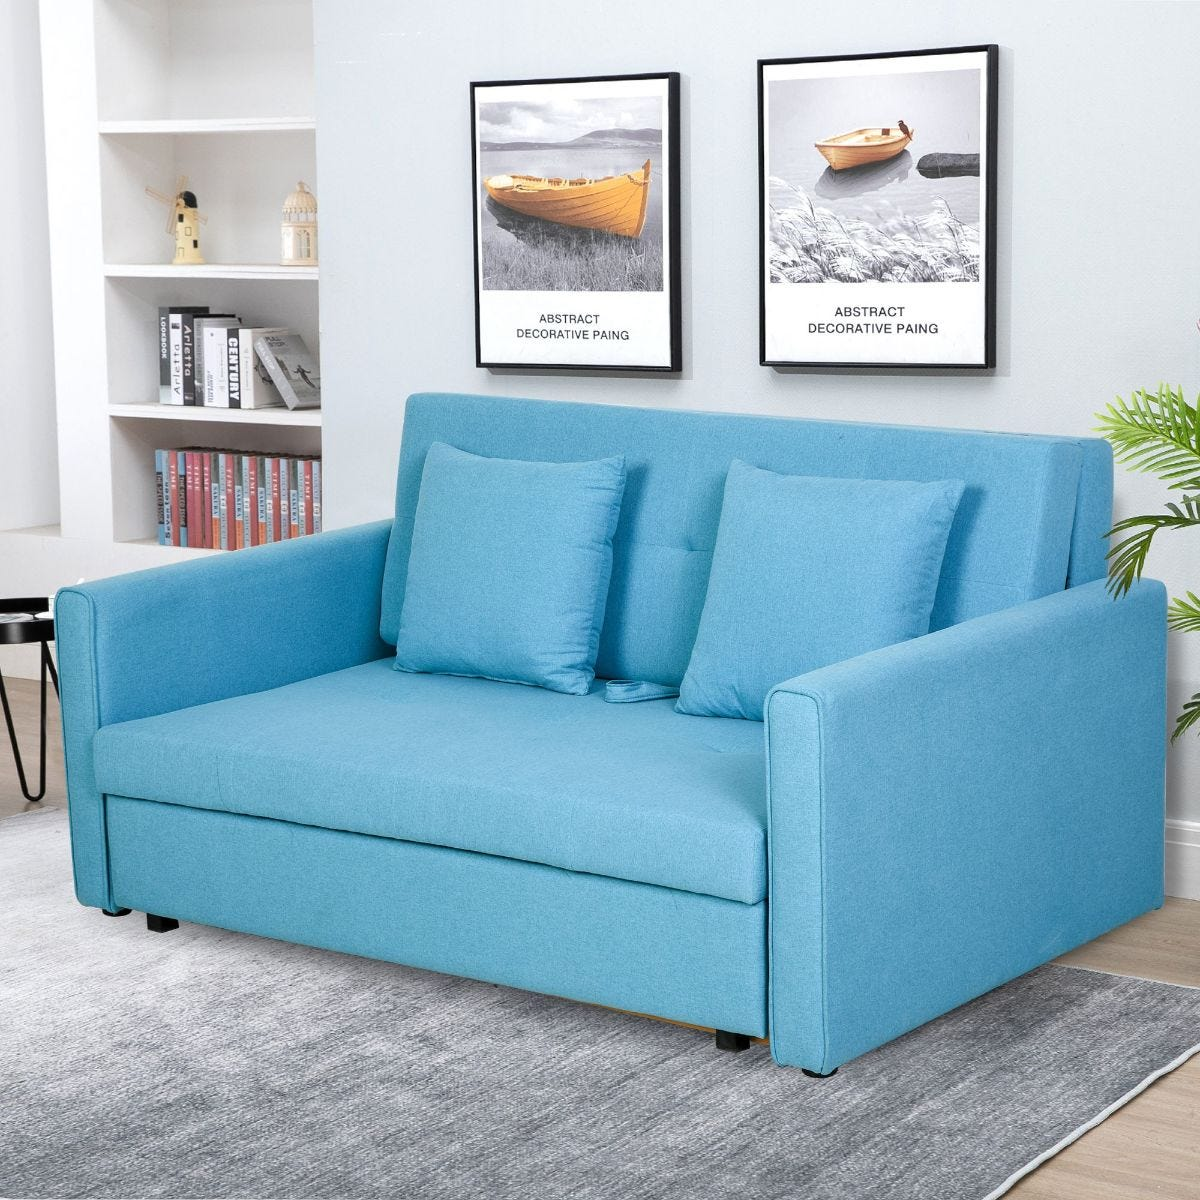 Two Seater Storage Sofa Bed Wood Frame Padding Compact Blue